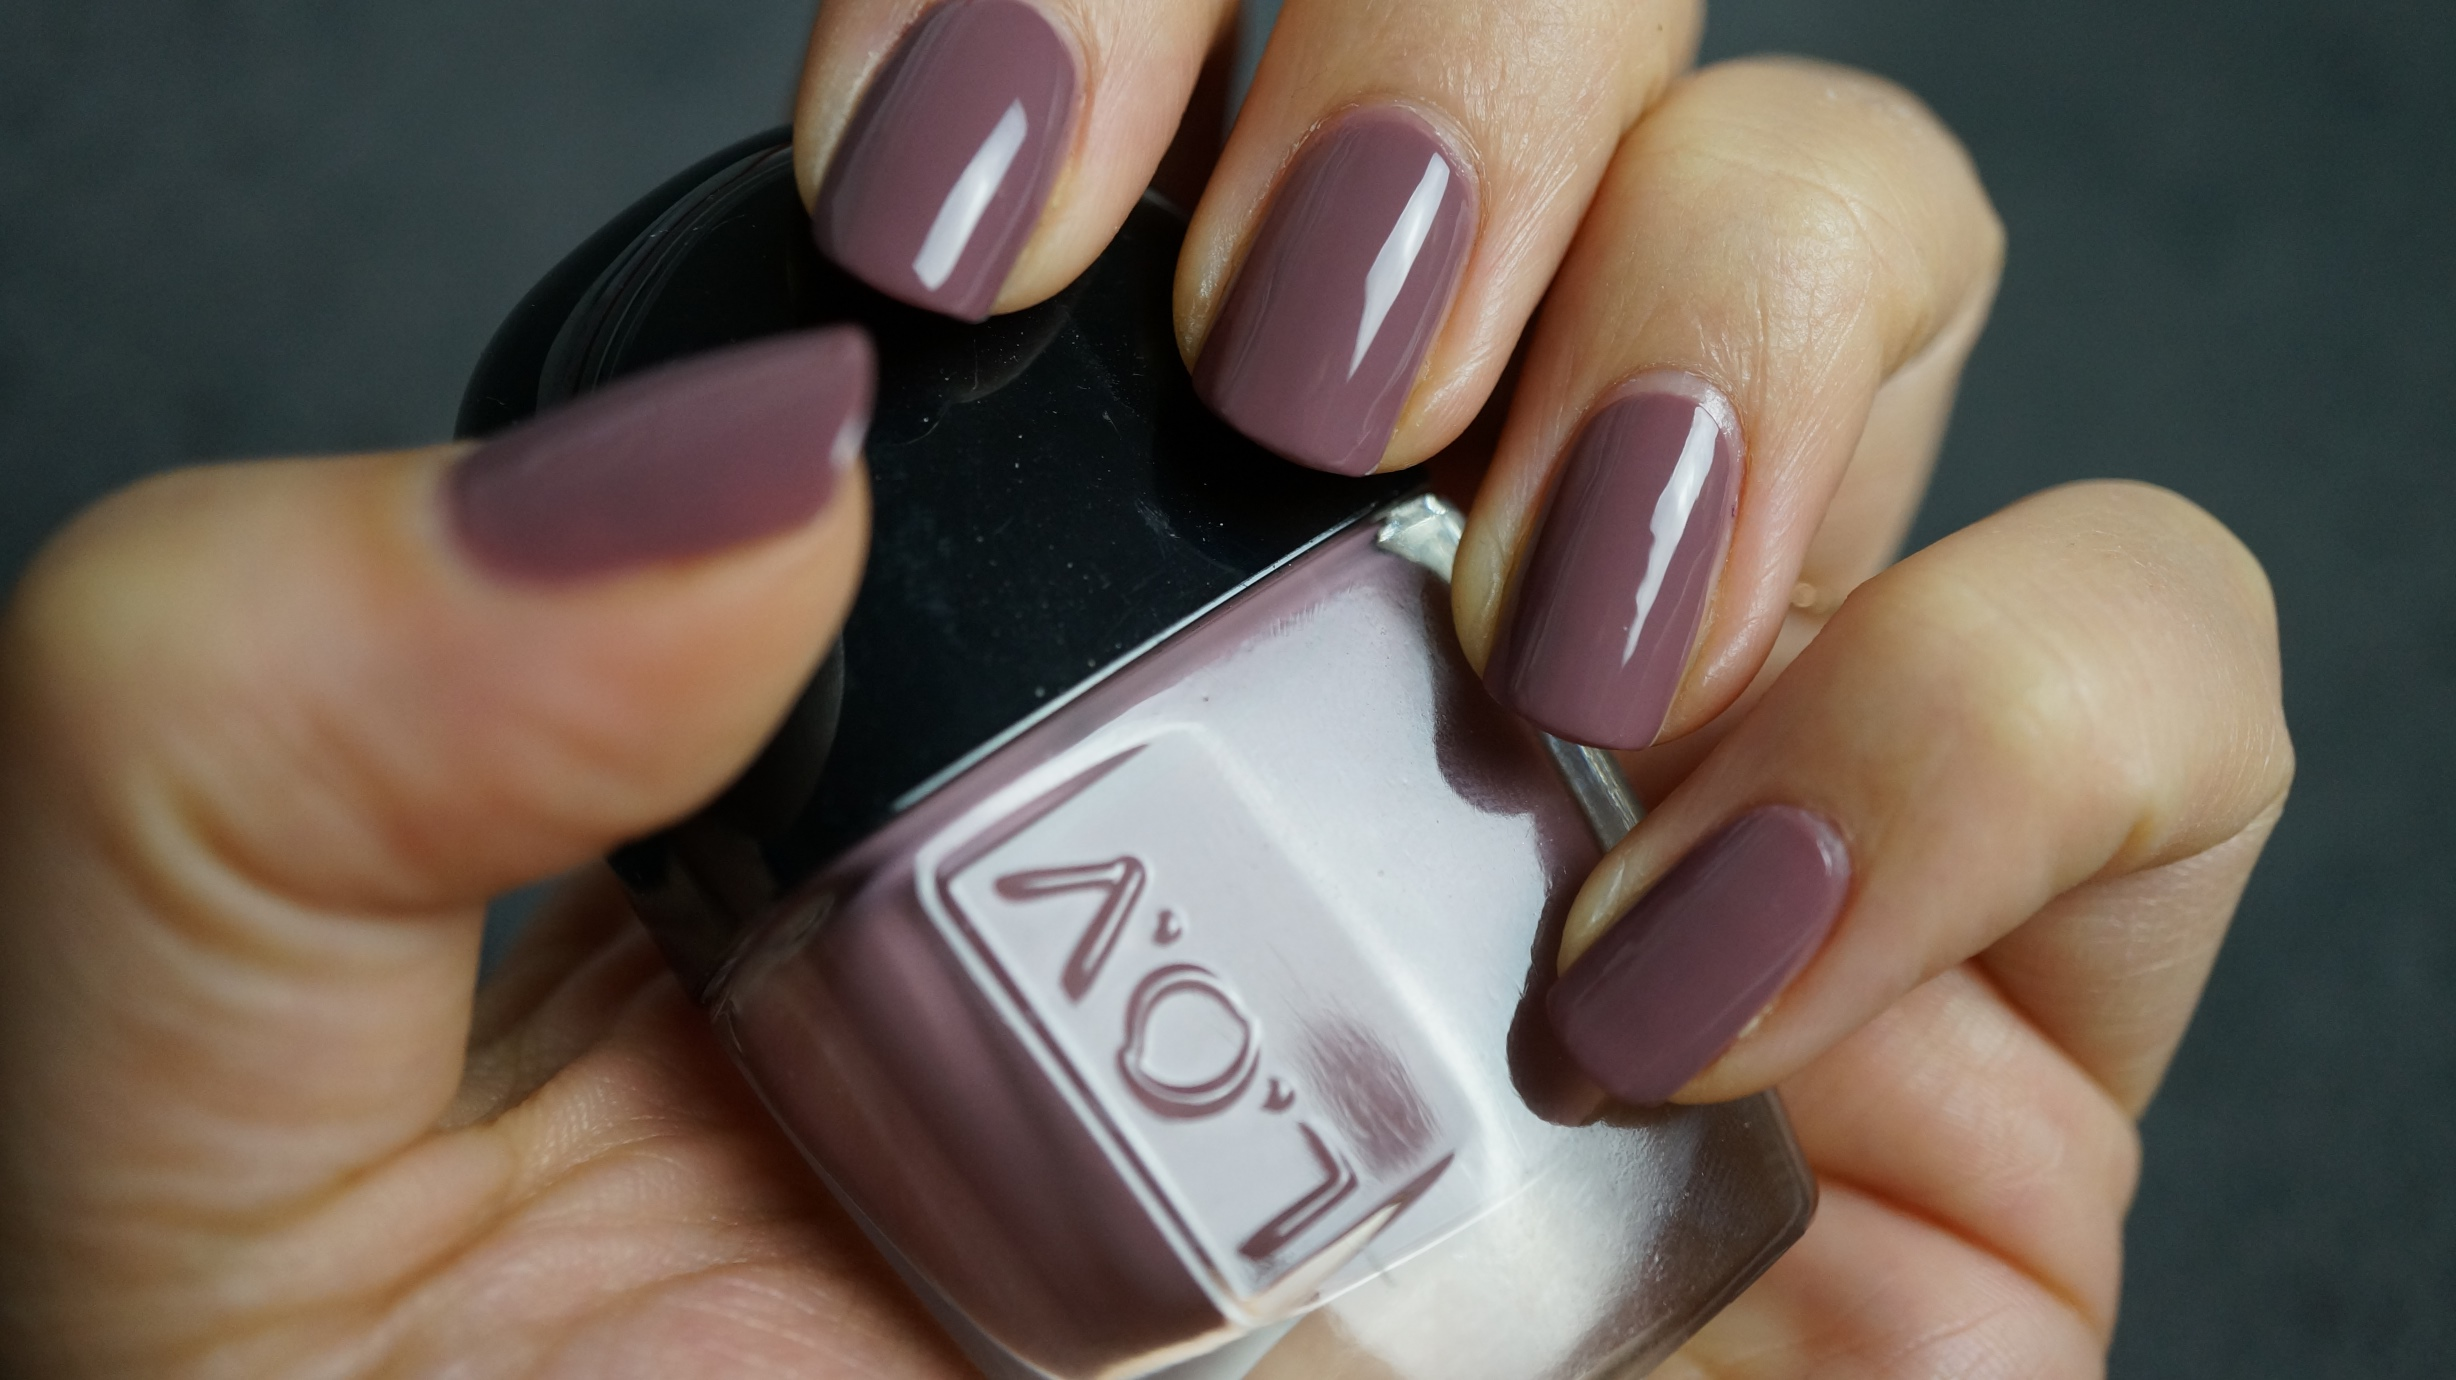 l.o.v mauve majesty